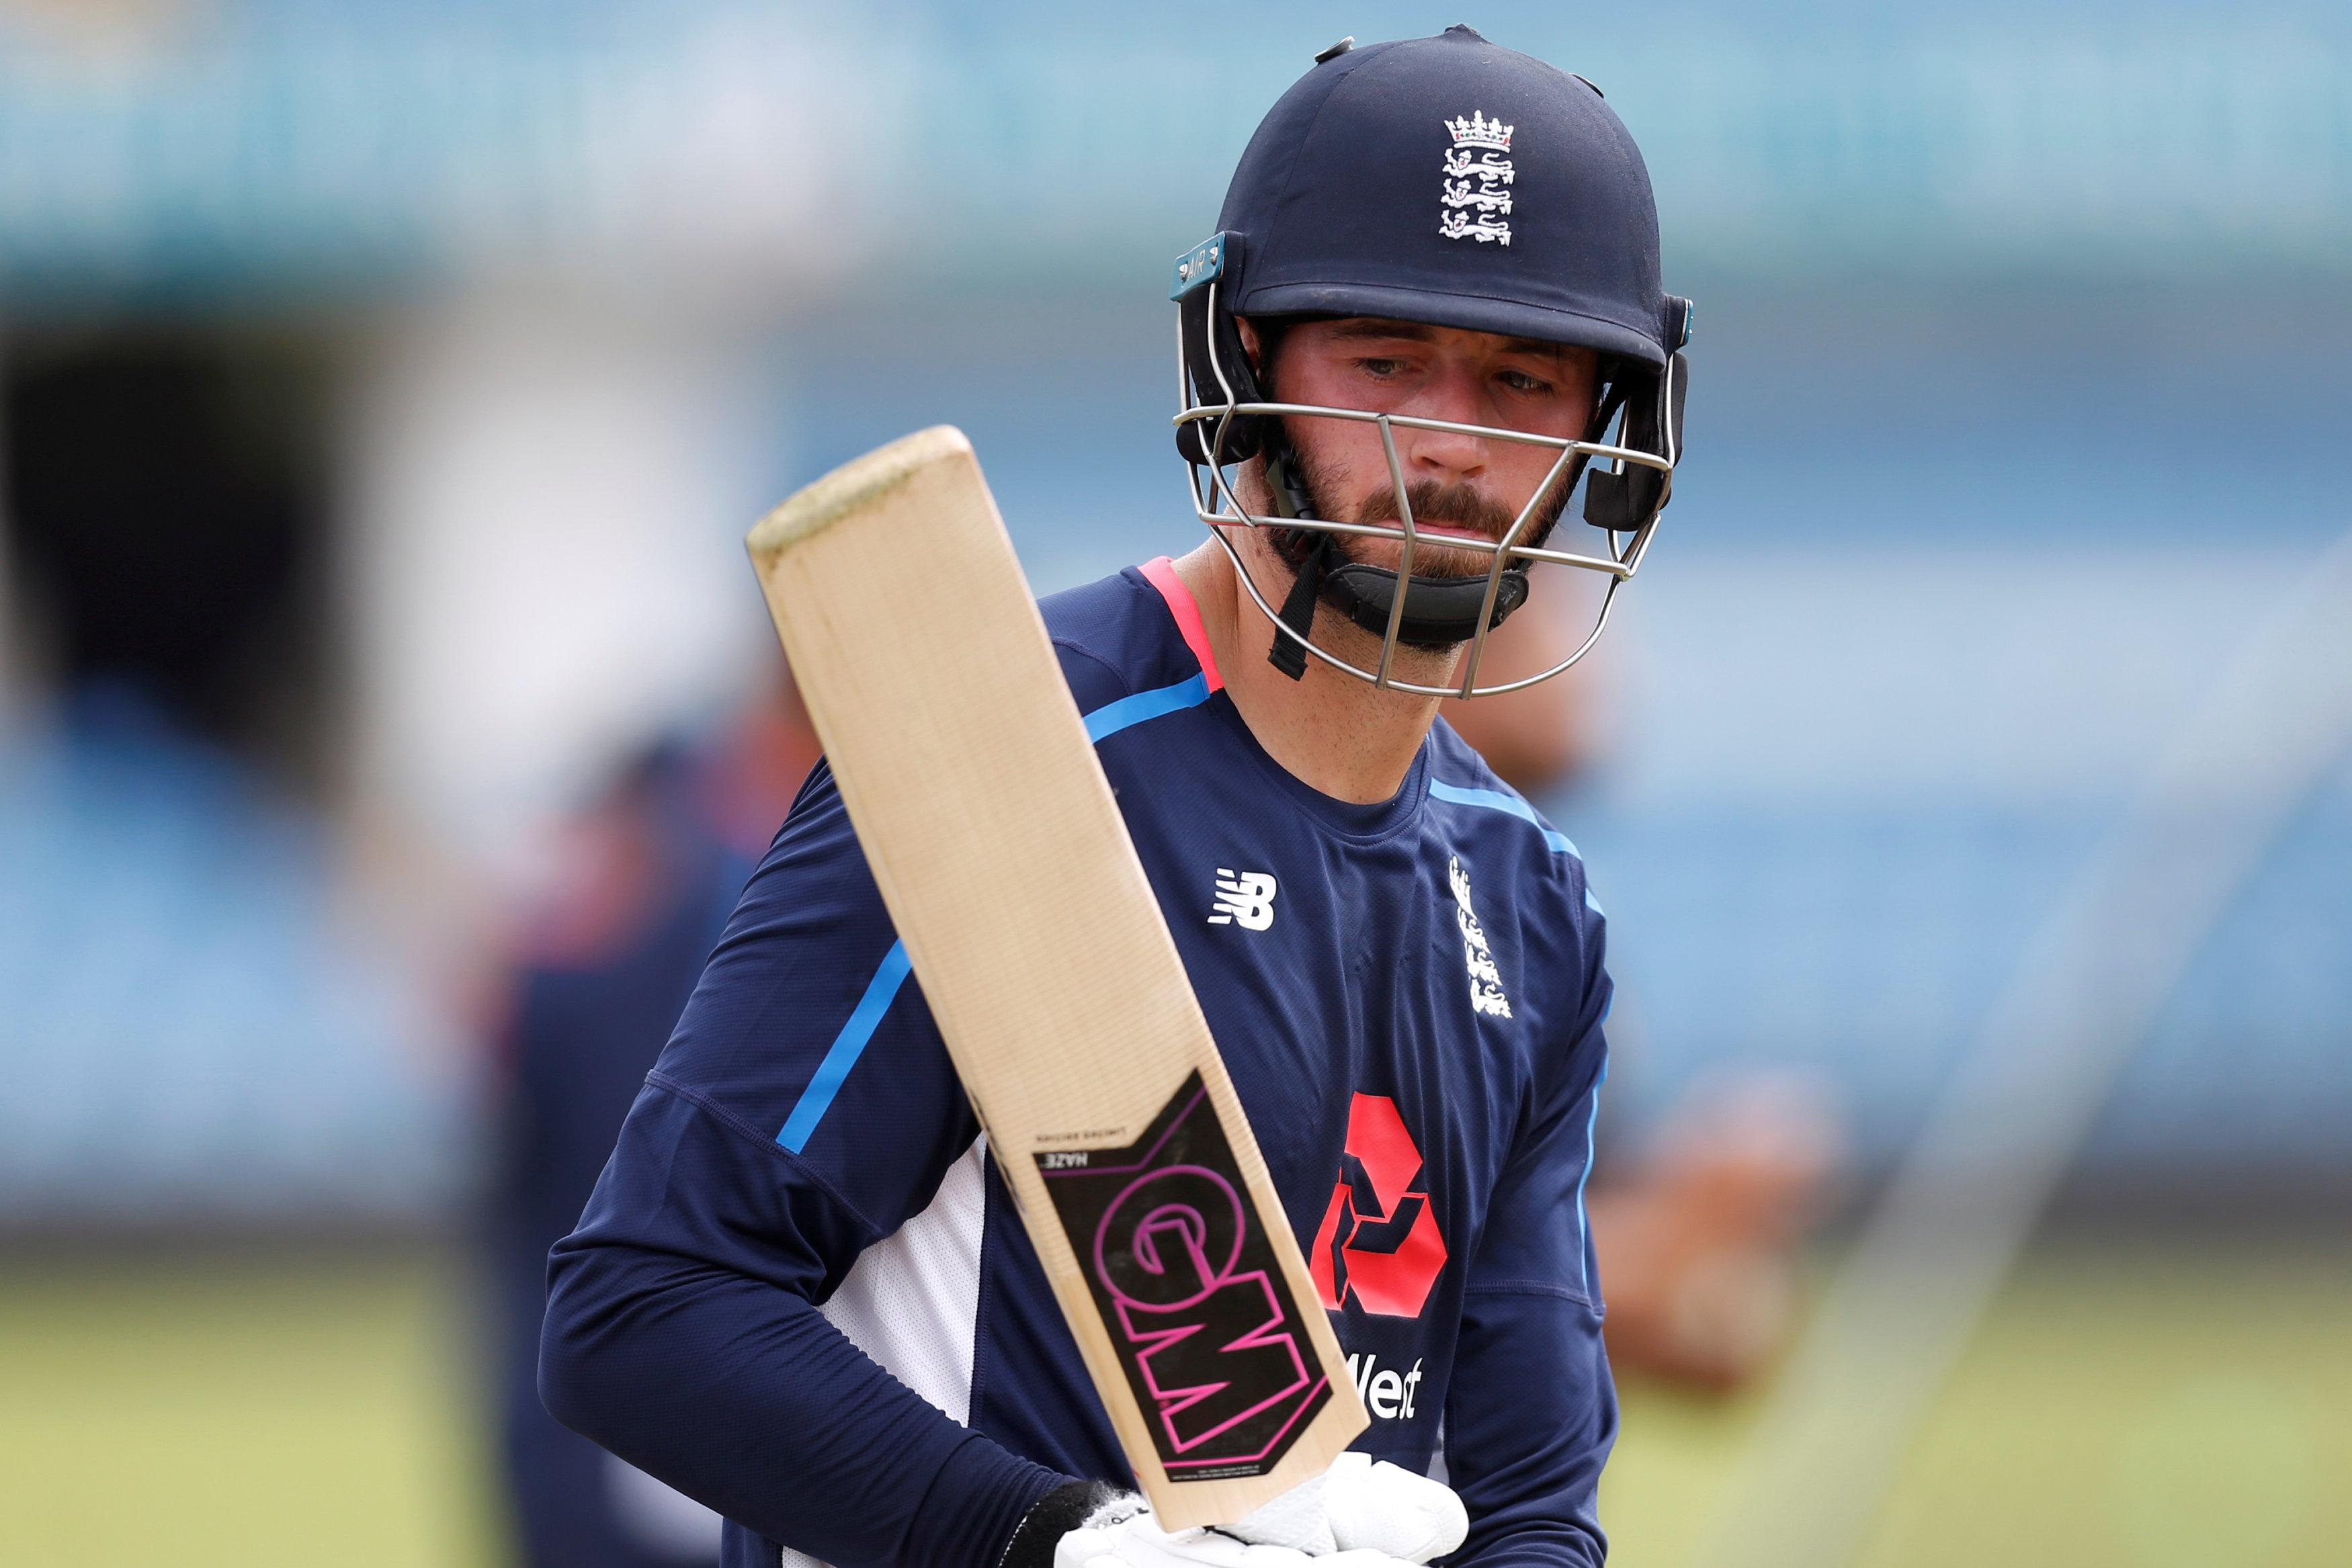 James Vince is now set to open the batting after a squad rotation